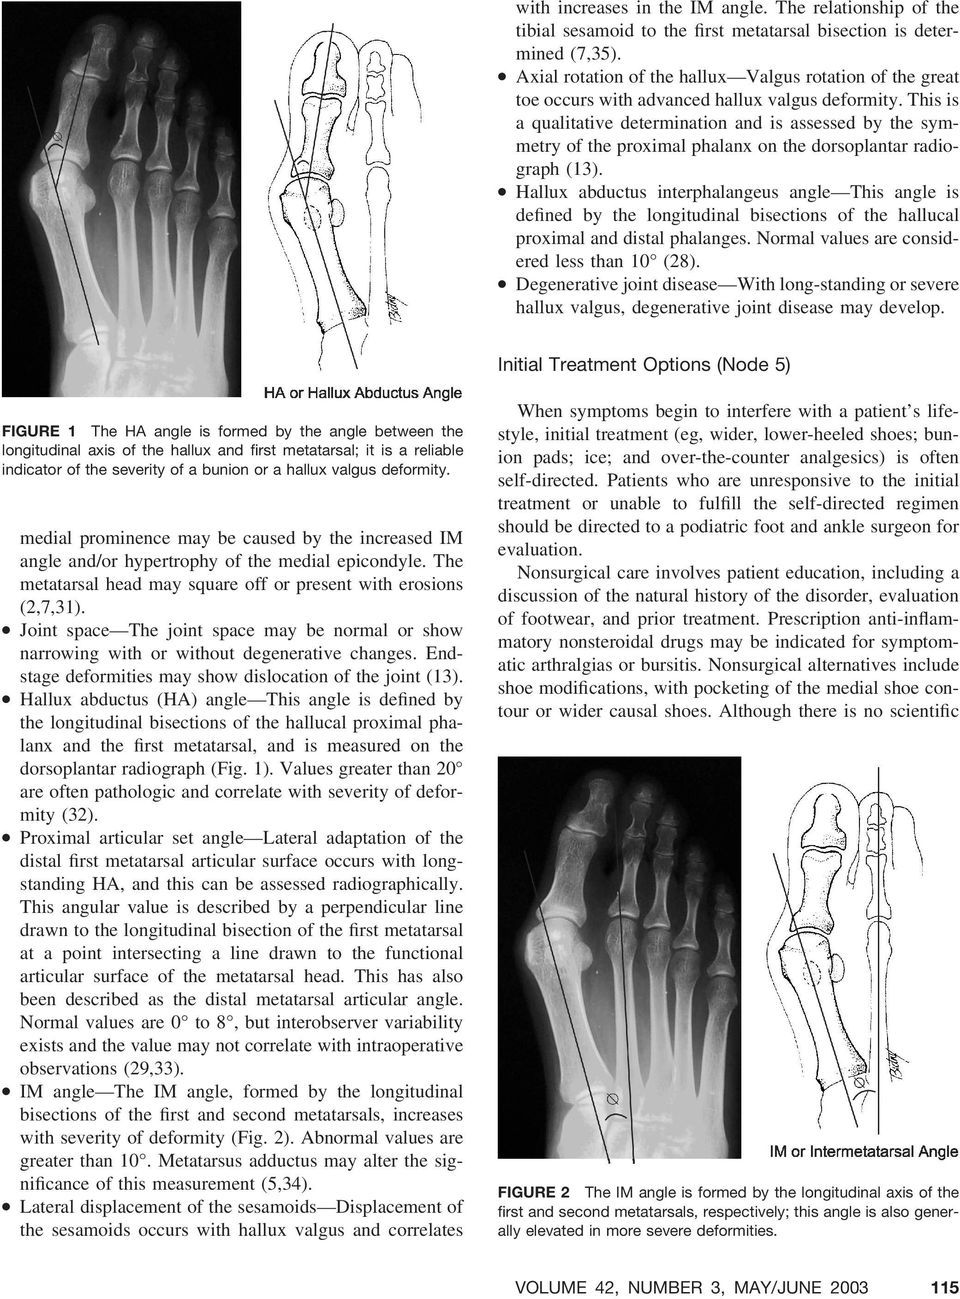 Diagnosis and Treatment of First Metatarsophalangeal Joint